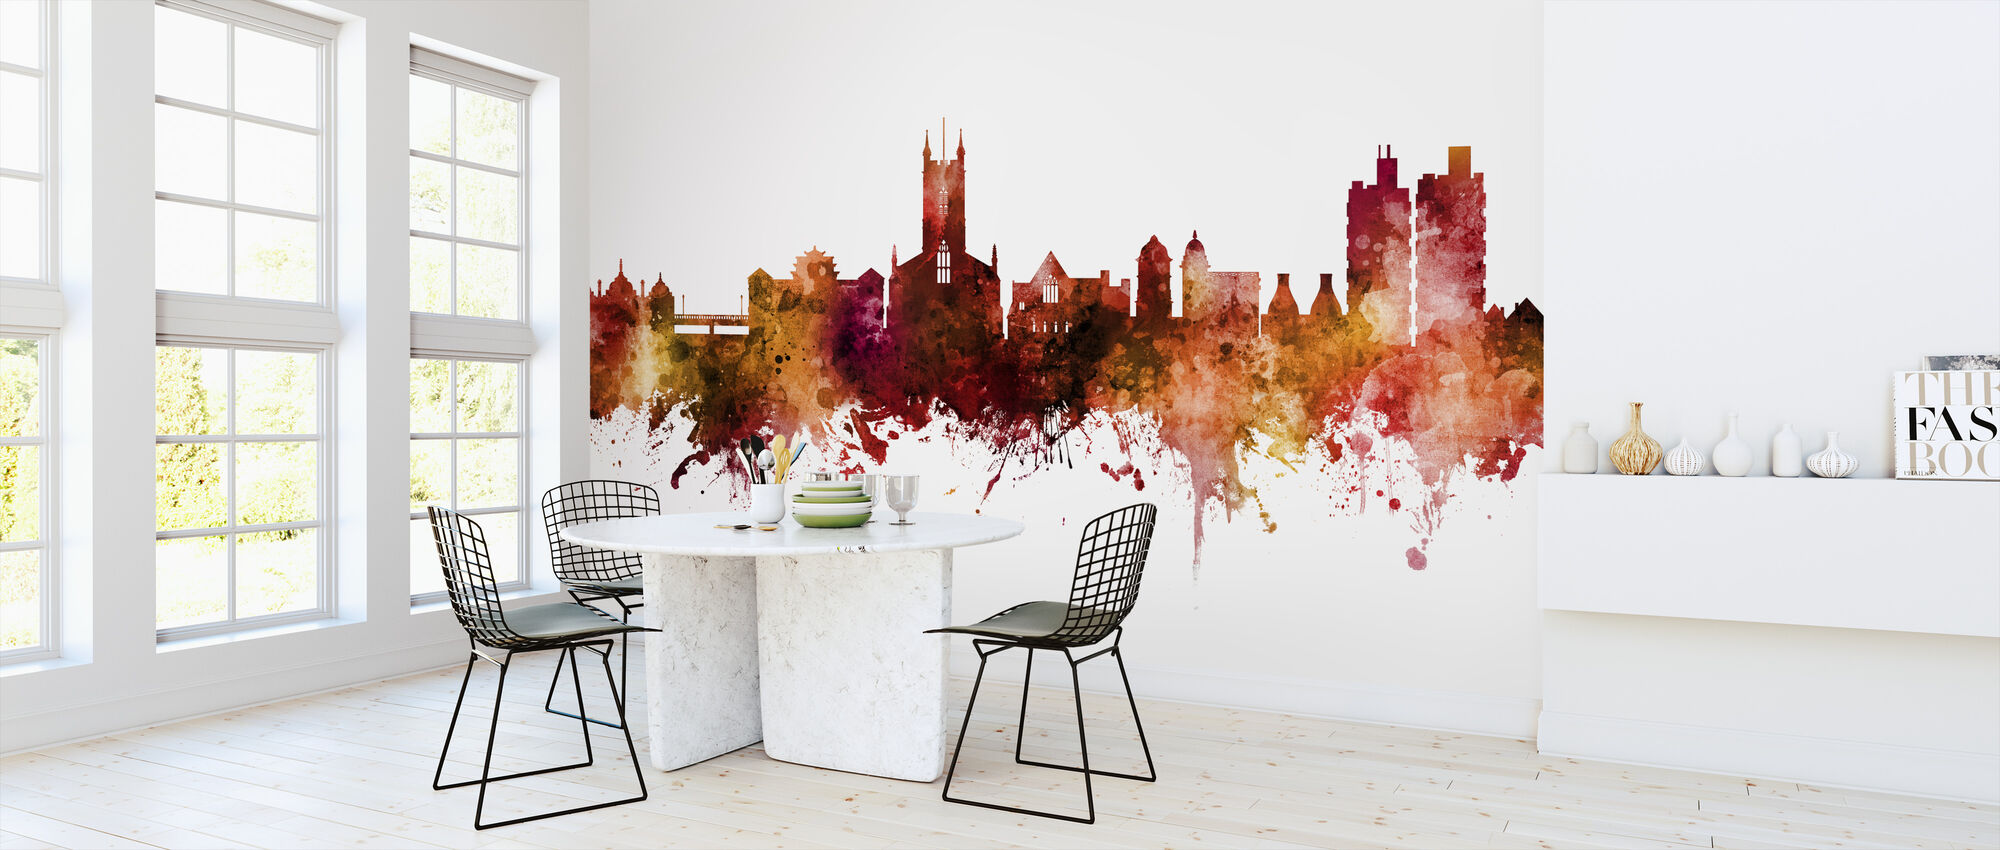 Stoke-on-Trent England Skyline - Wallpaper - Kitchen